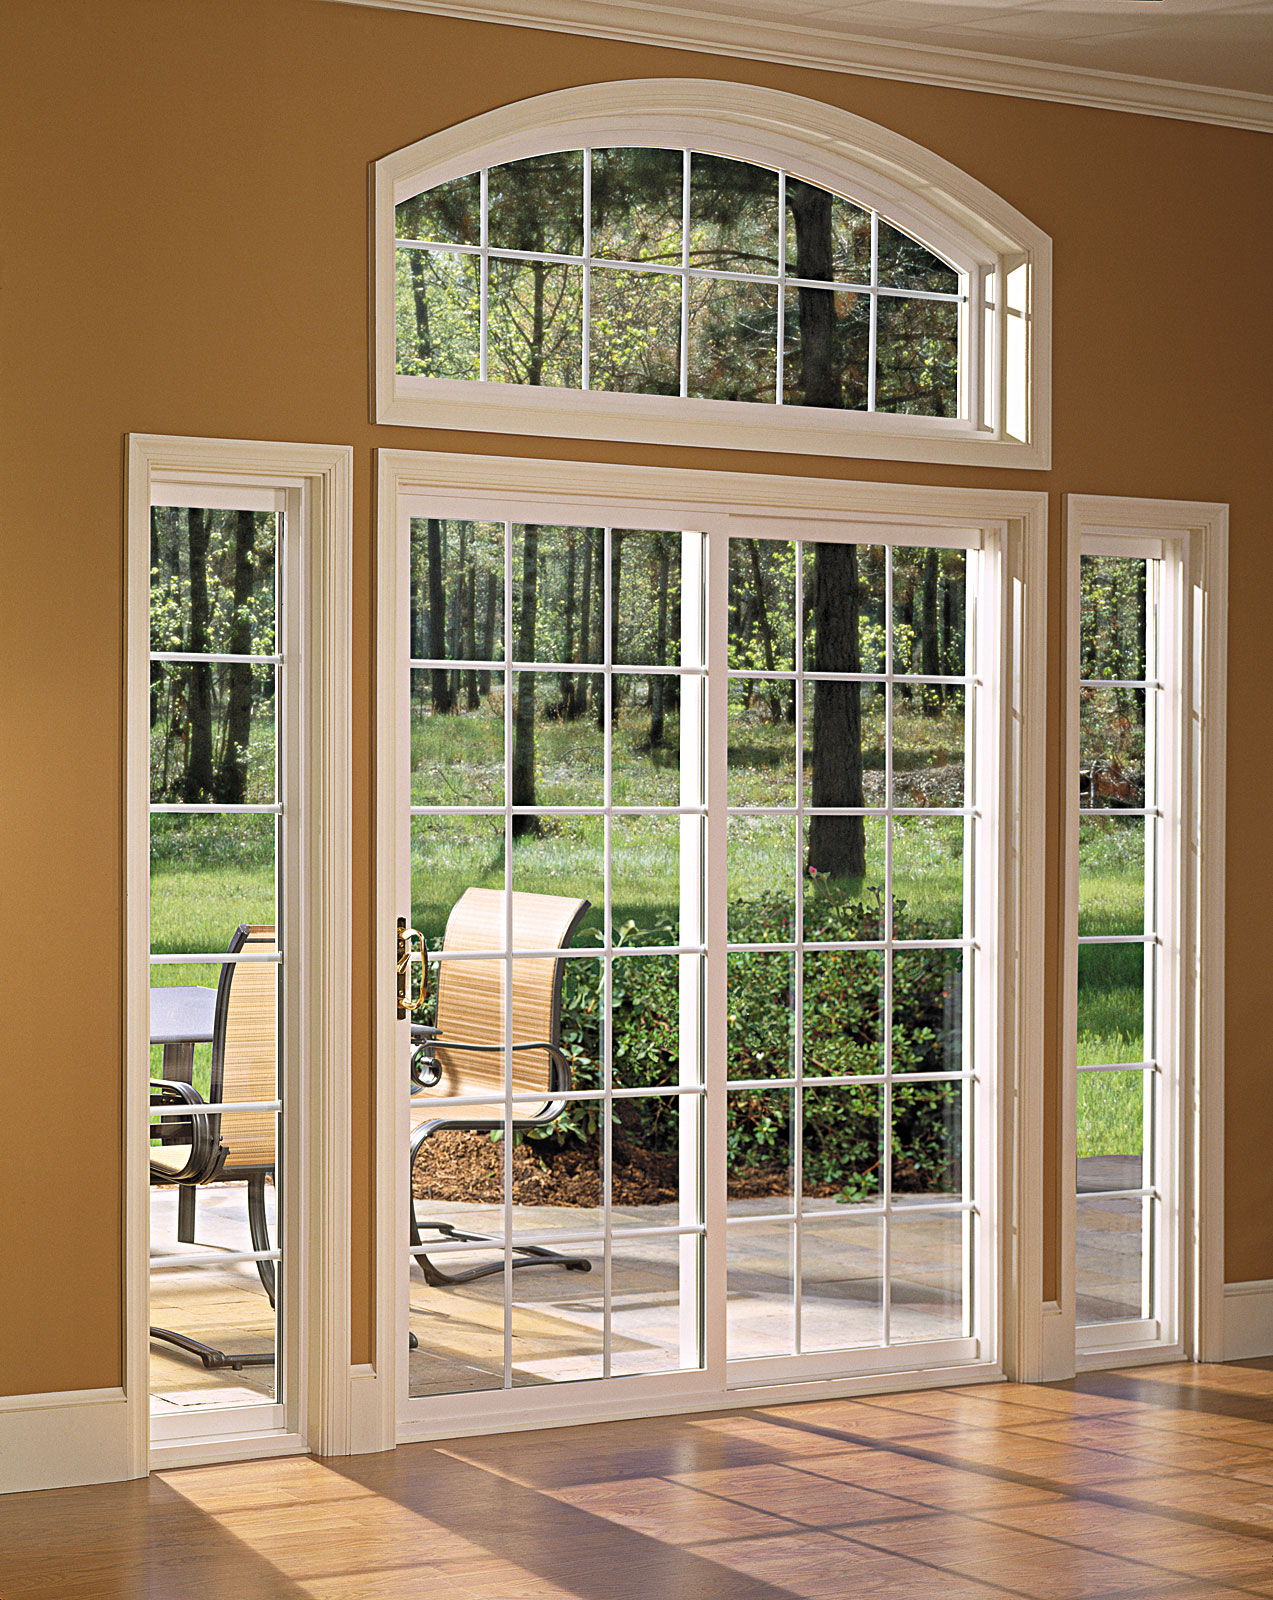 Replacement Windows - Make your Home Energy Efficient